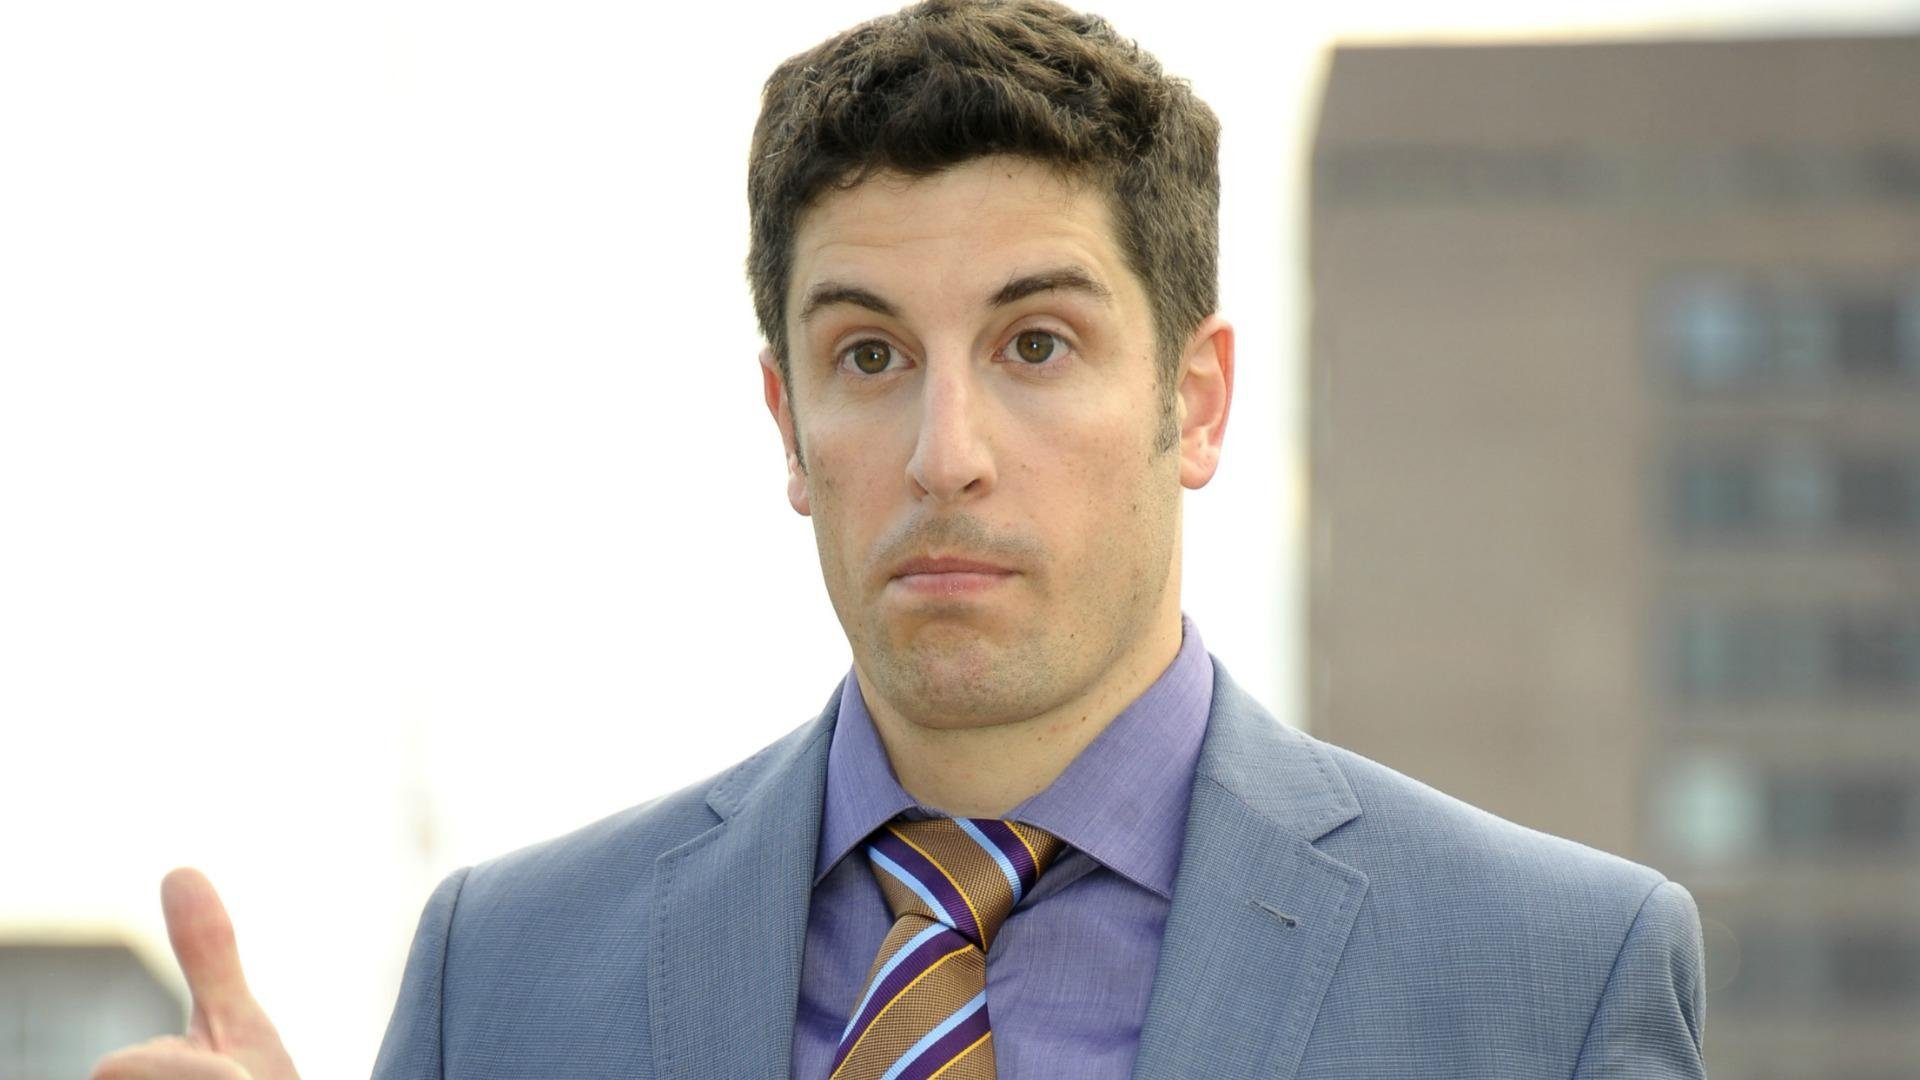 Jason Biggs comments on Malaysian Airline flight